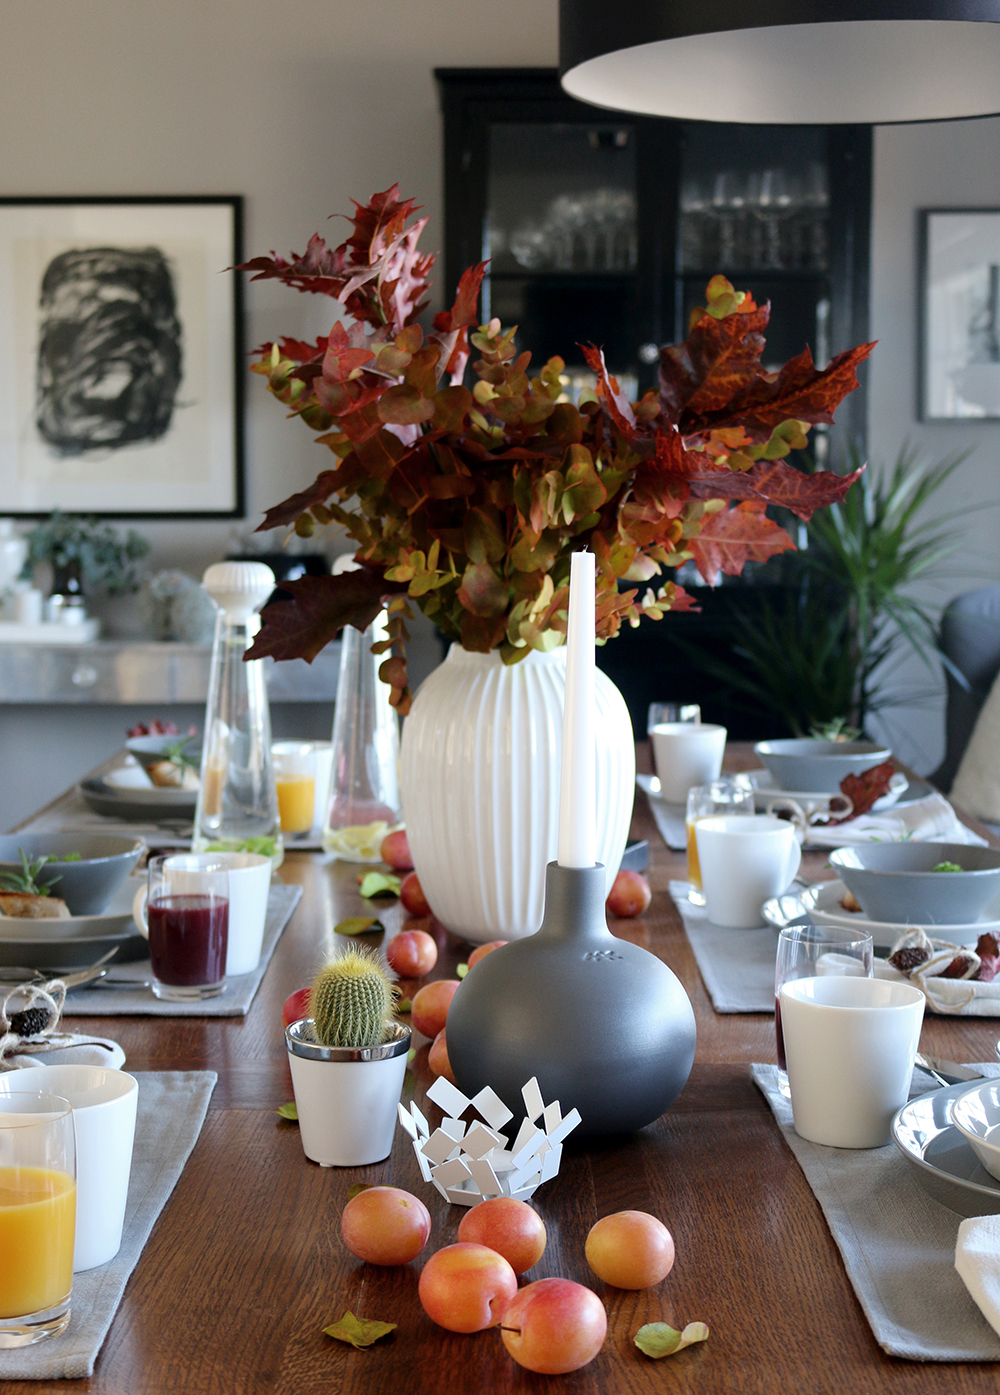 Autumn-table-setting-1-Anette-Willemine-Solheim